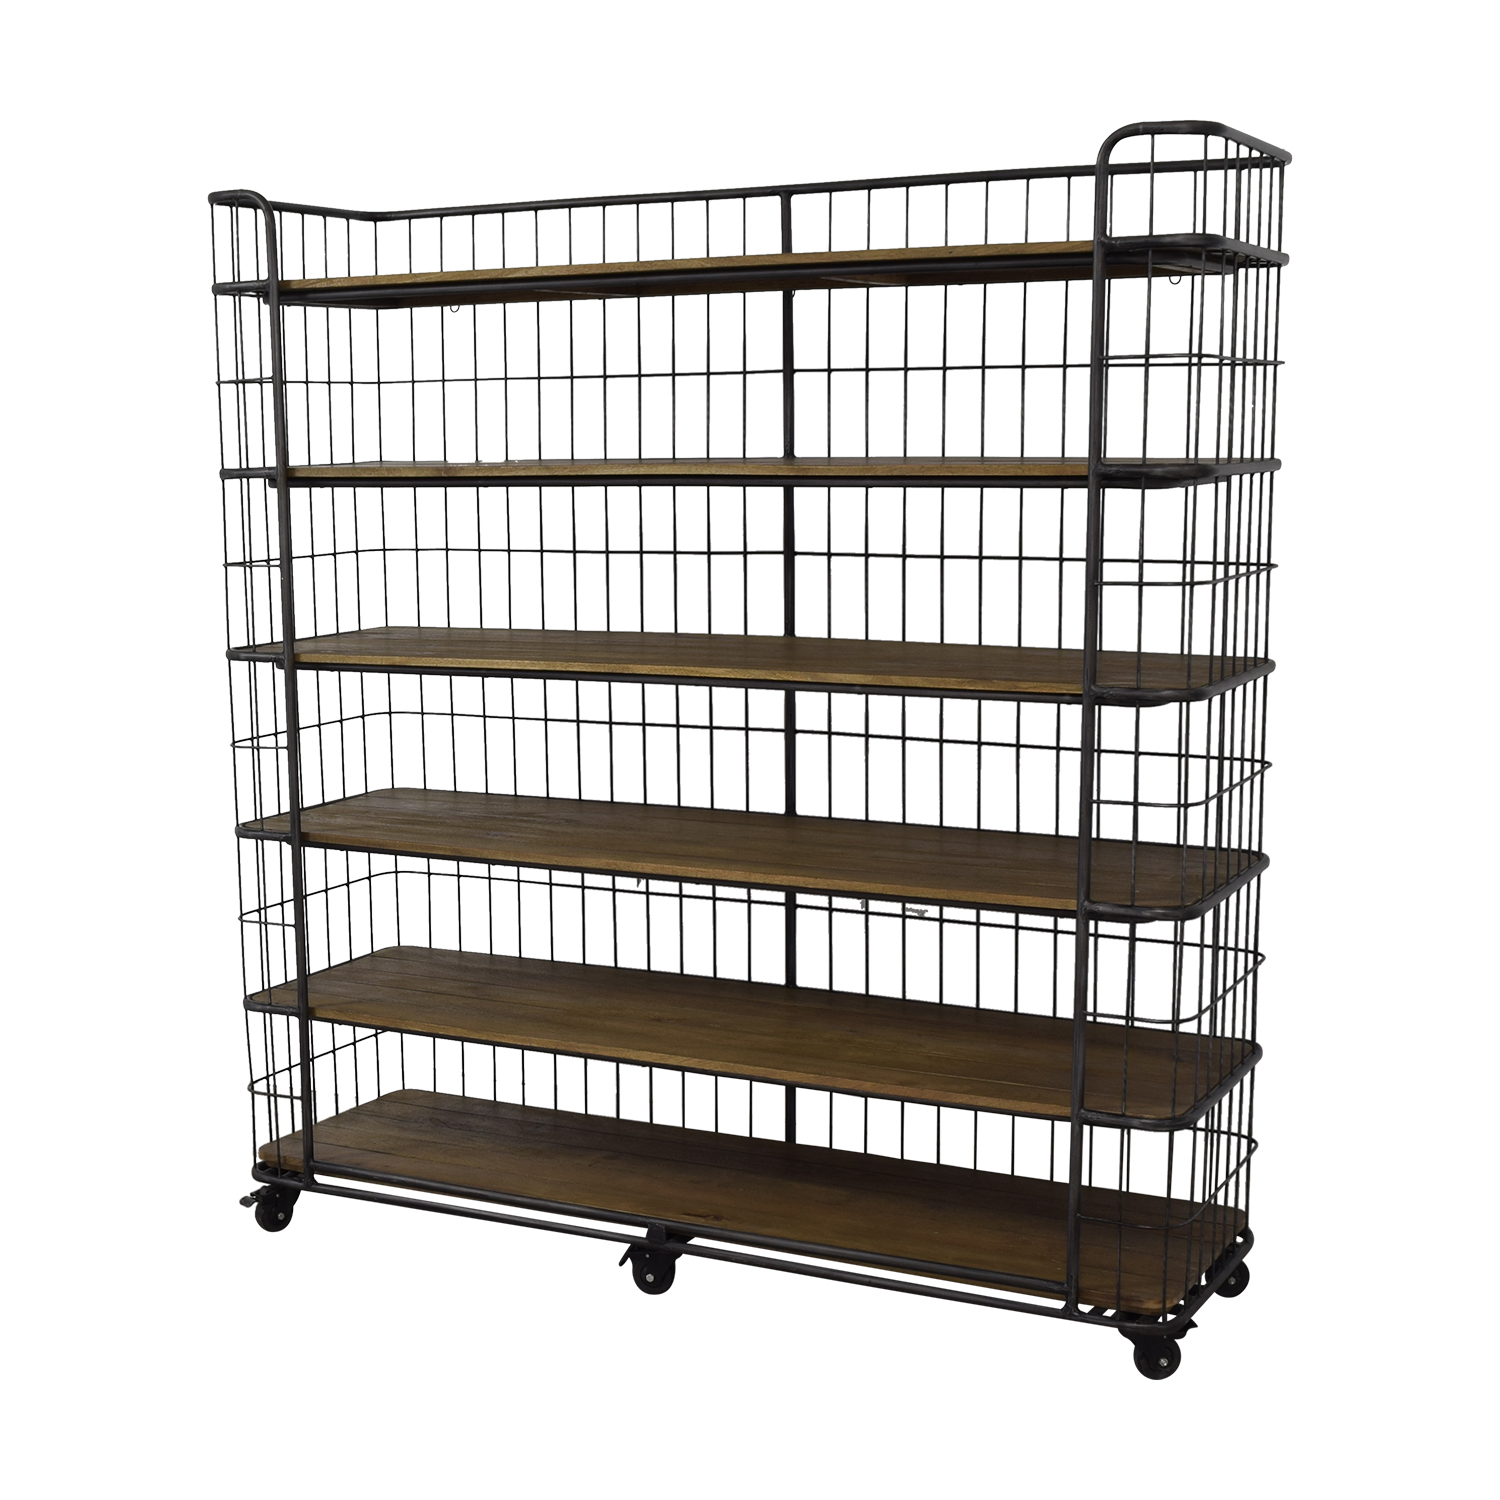 buy Restoration Hardware Restoration Hardware Circa 1900 Caged Baker's Rack Wide Single Shelving online